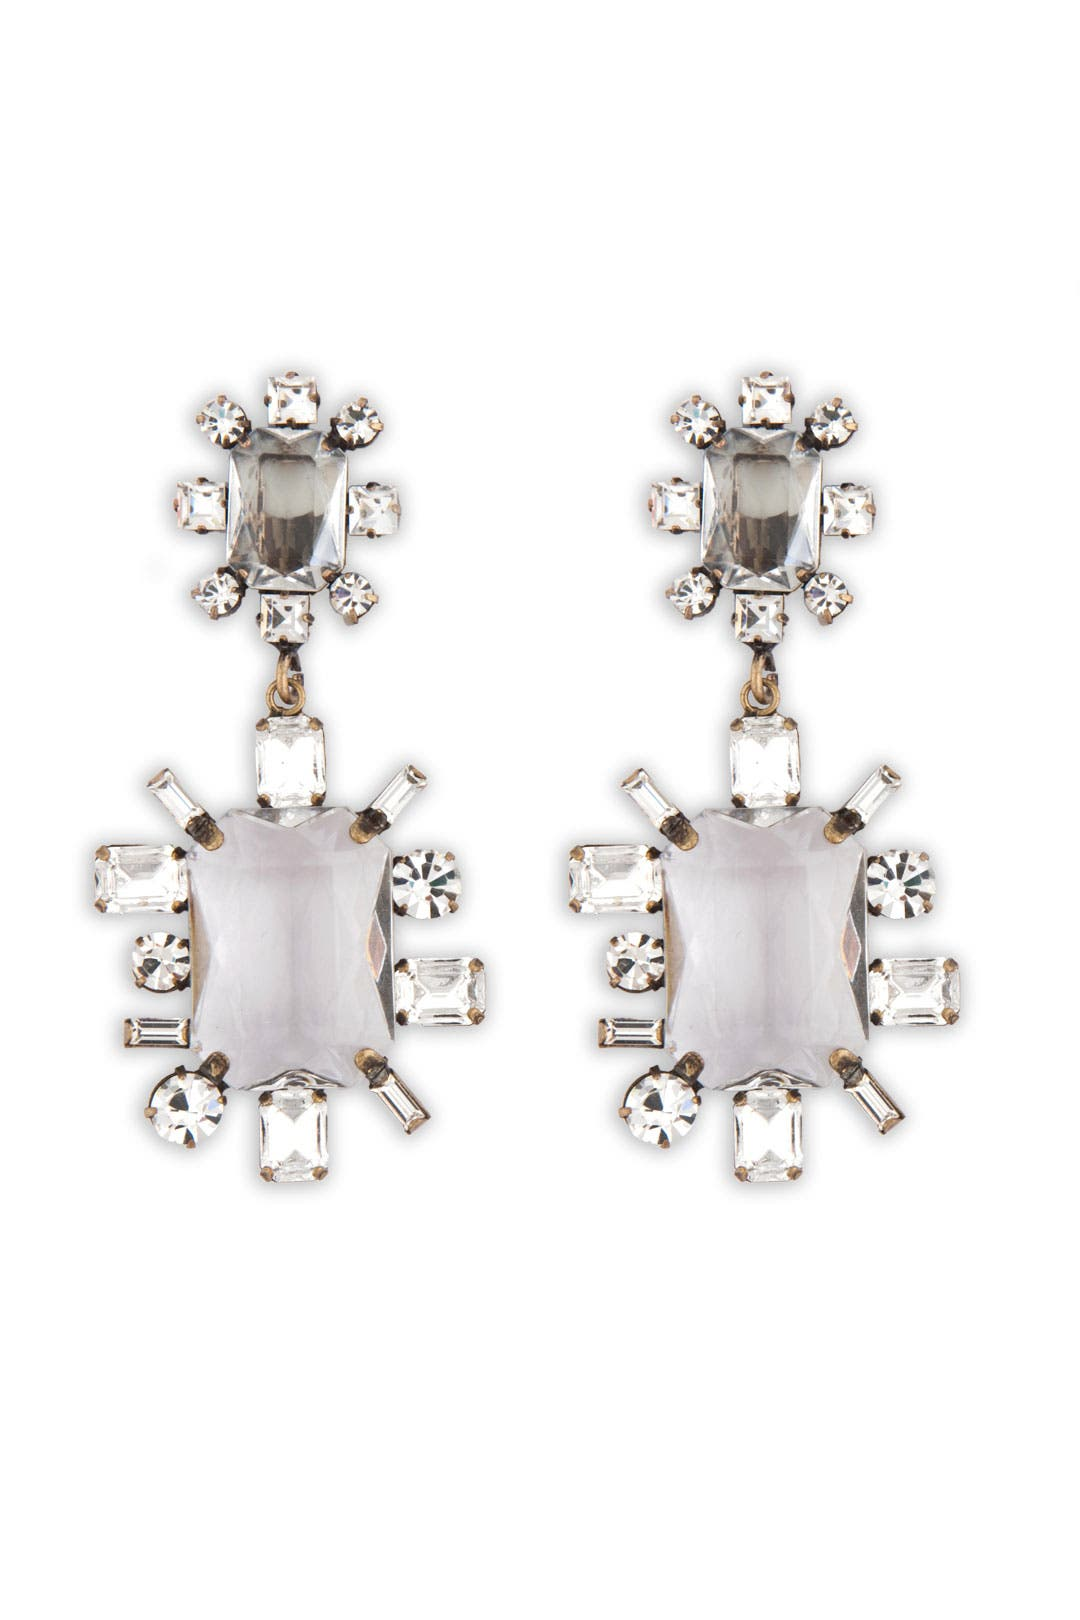 Palace Earrings by RJ Graziano